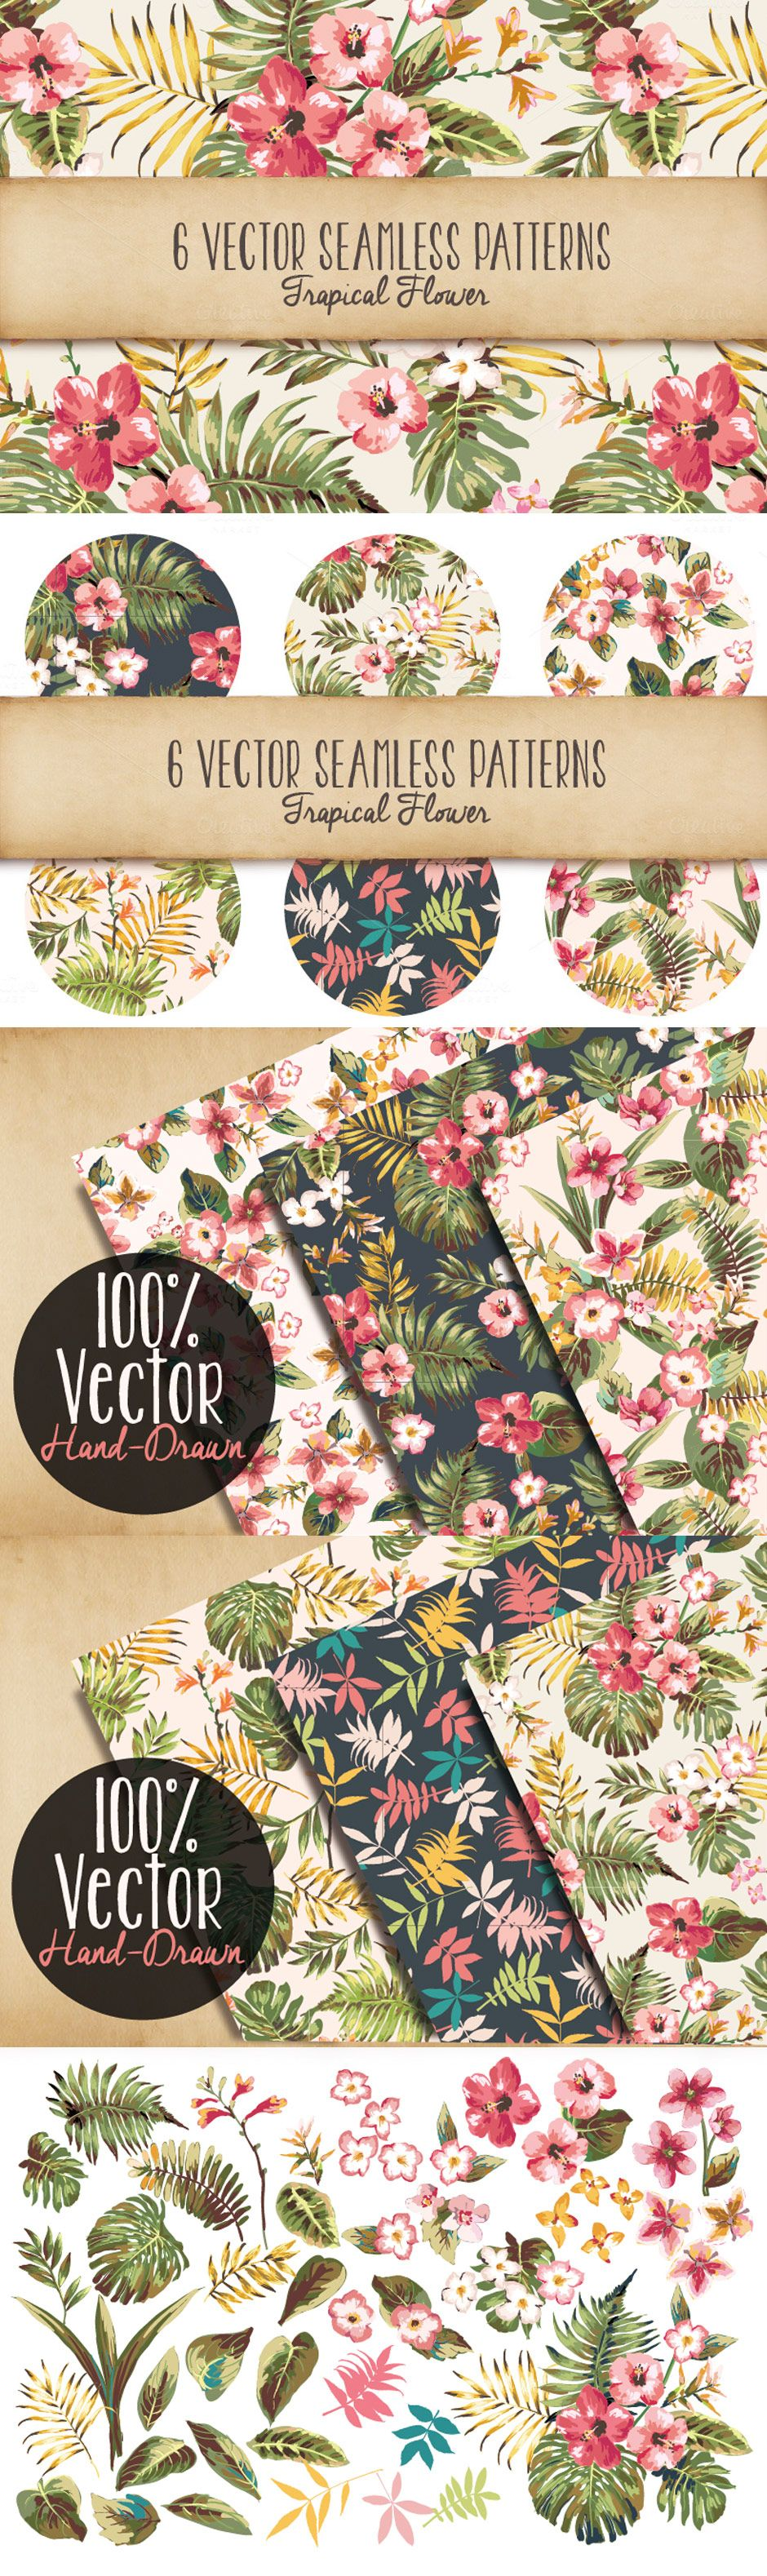 Seamless tropical patterns vol by graphic box the comprehensive